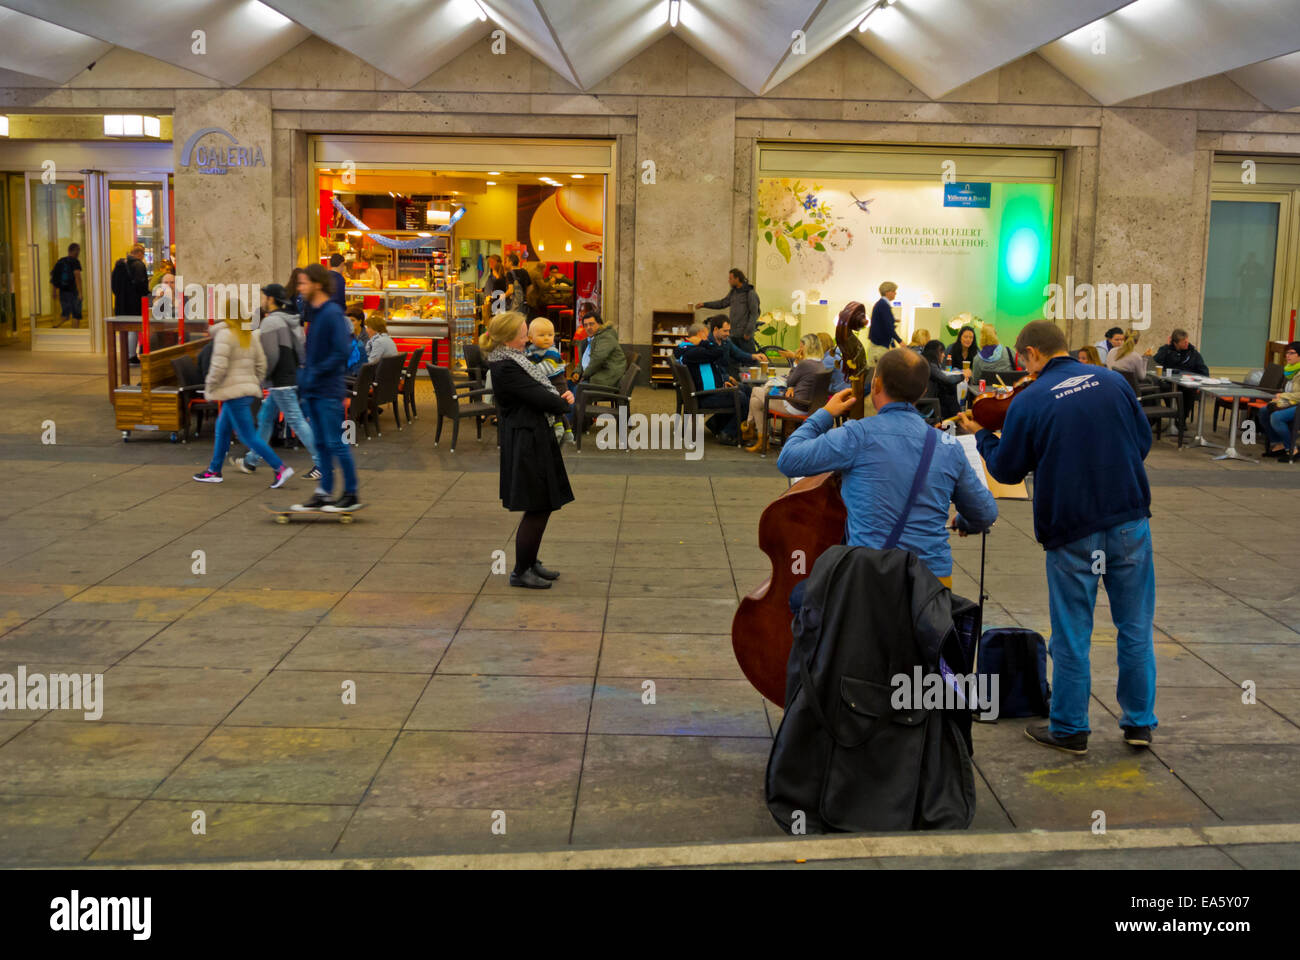 Buskers playing classical music, Alexanderplatz, Mitte district, Berlin, Germany - Stock Image